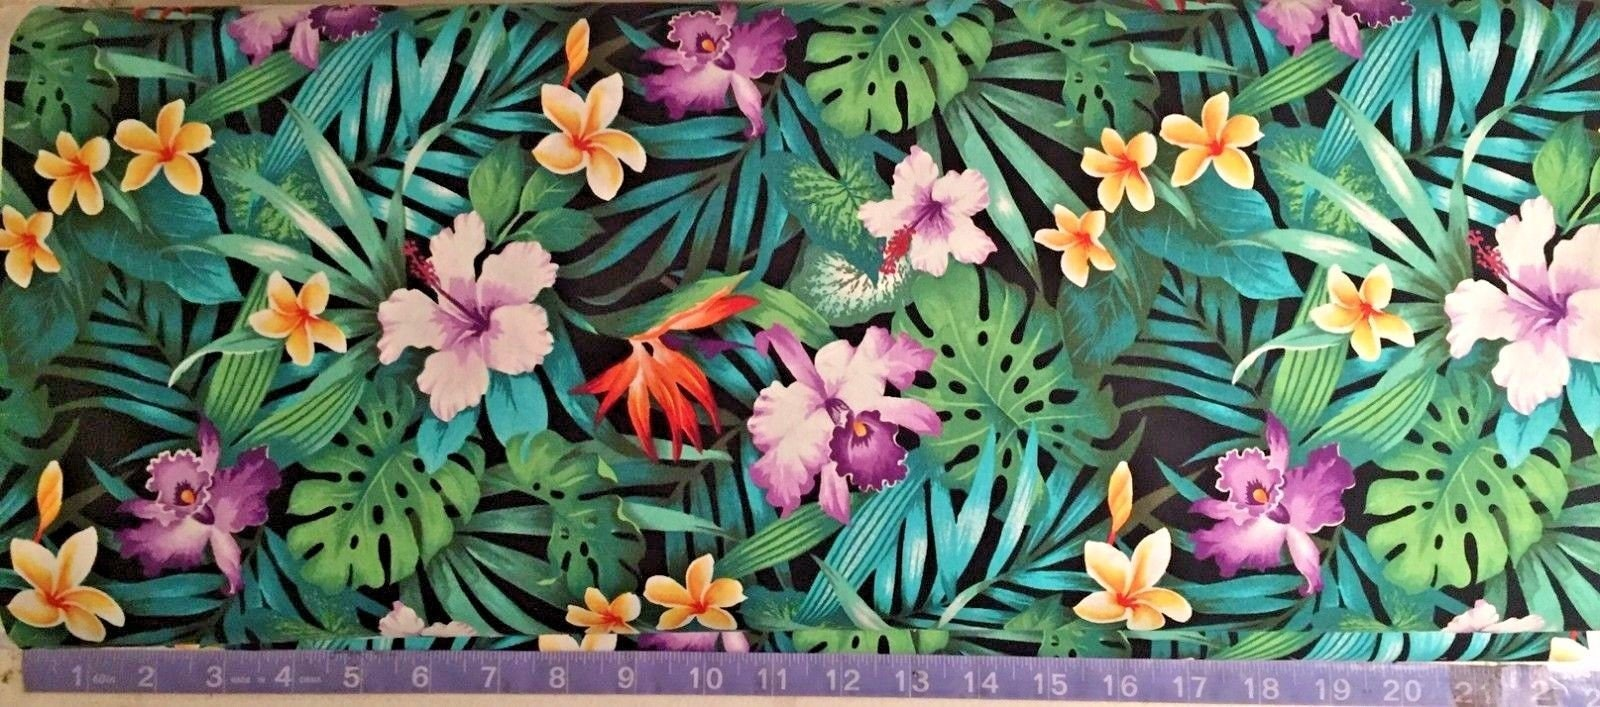 Hawaiian Tropical Flowers Black Fabric Hibiscus Orchids Etsy